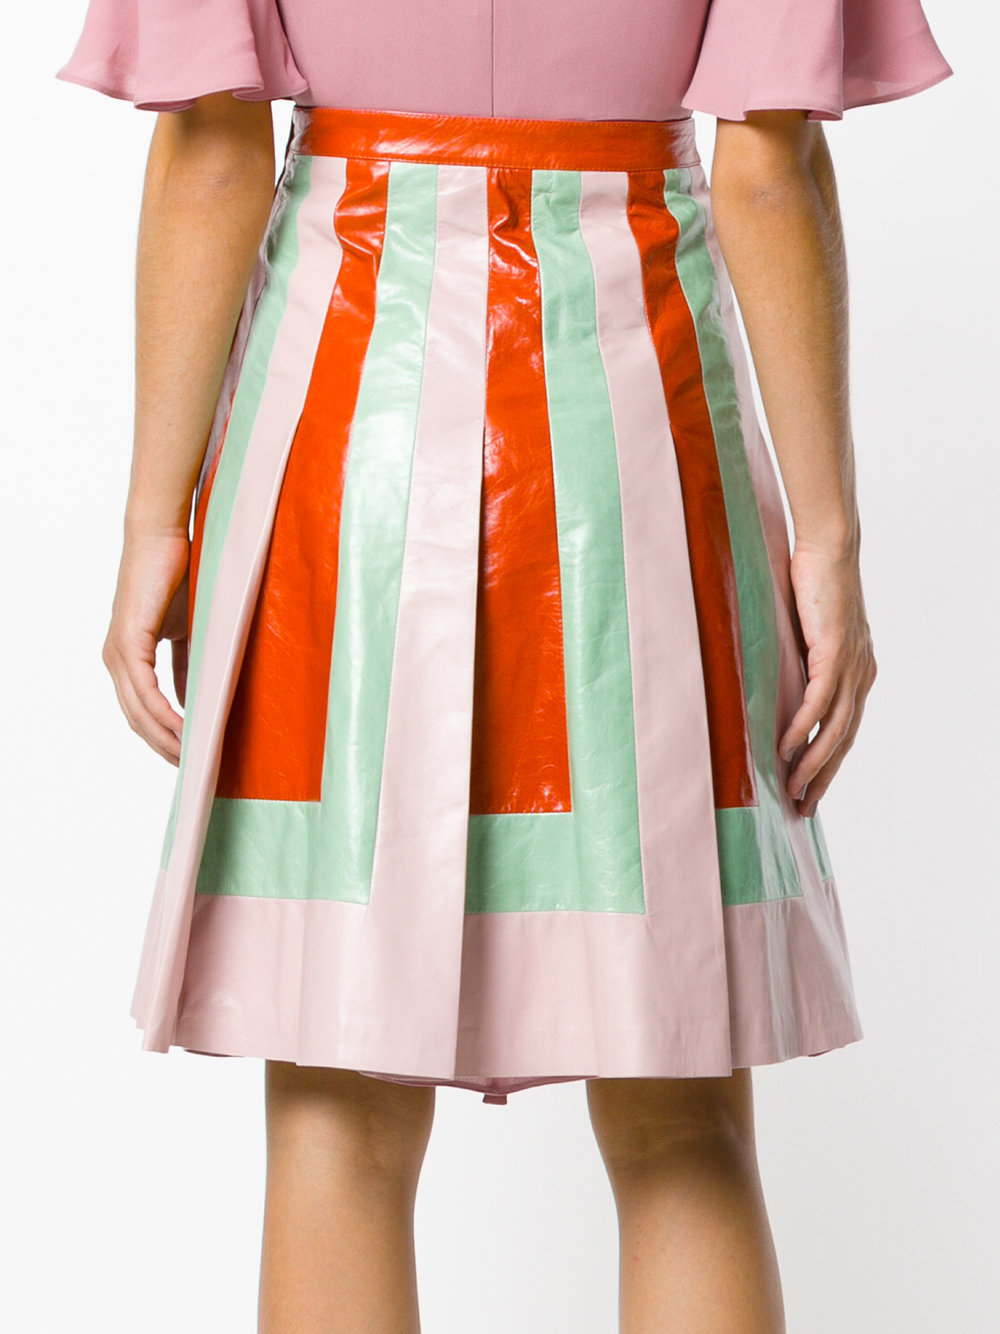 17-18AW V787 LOOK23 COLOR-BLOCK PLEATED LEATHER SKIRT